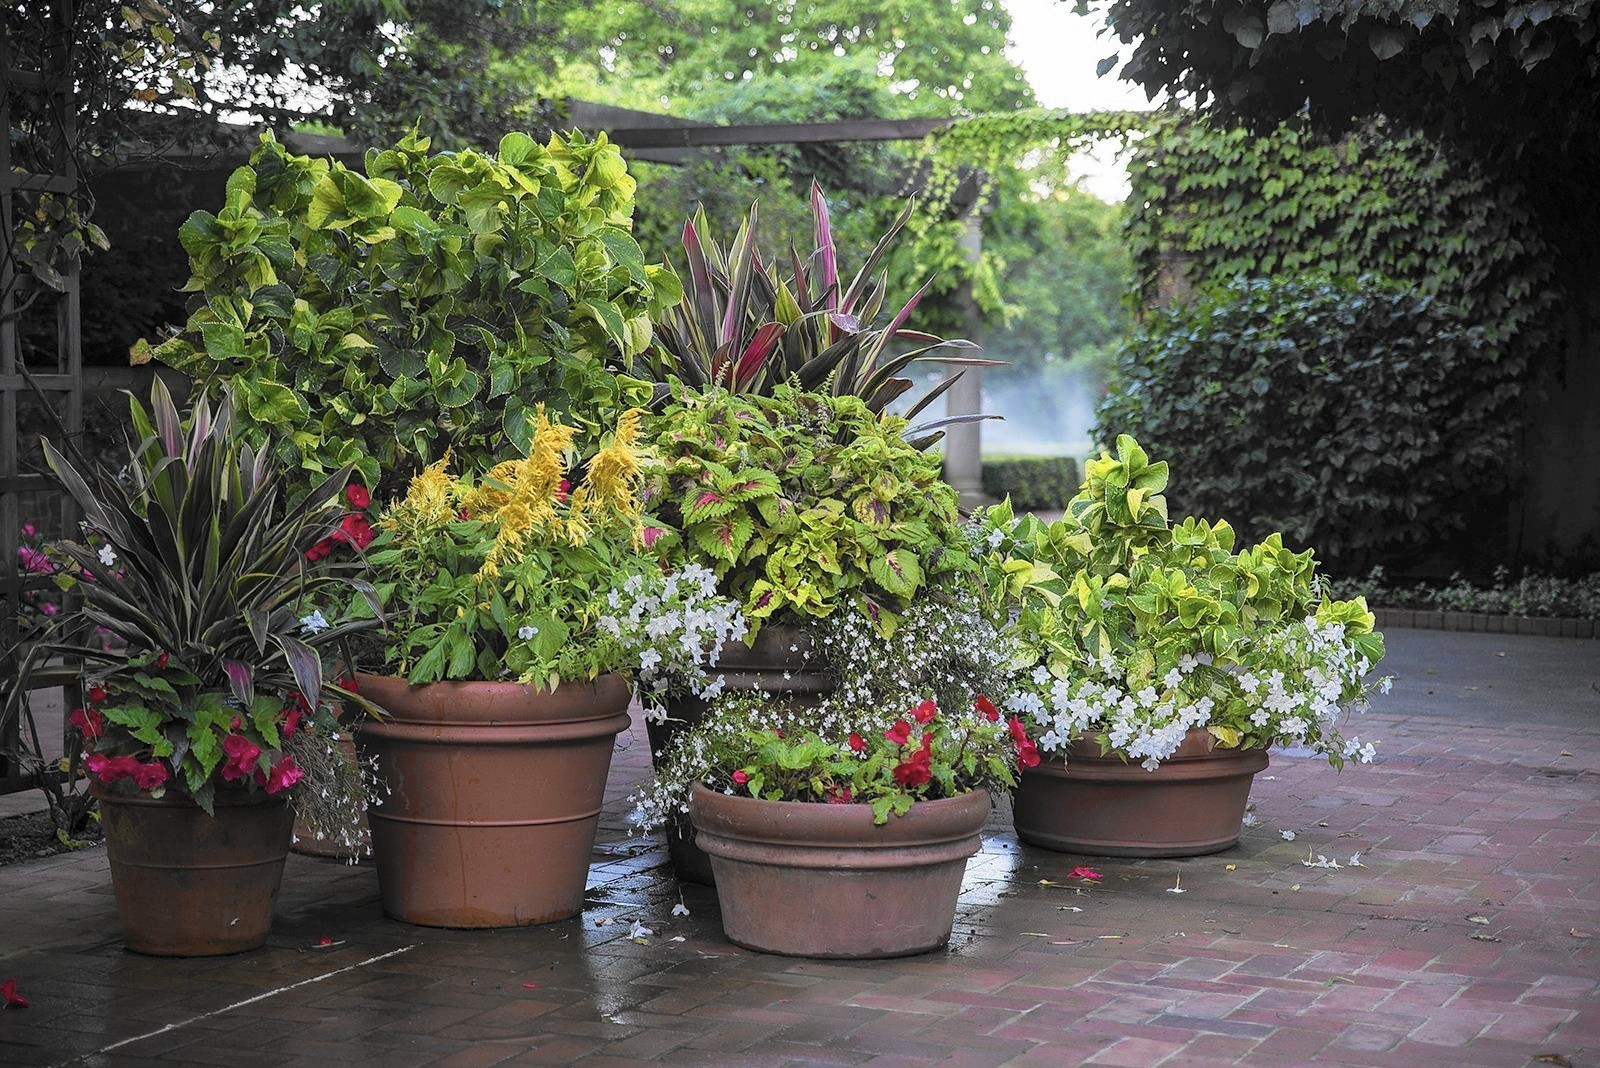 No Petunias Were Harmed In >> Annual Plants In Garden Suffering From Cold Rainy Spring And Summer